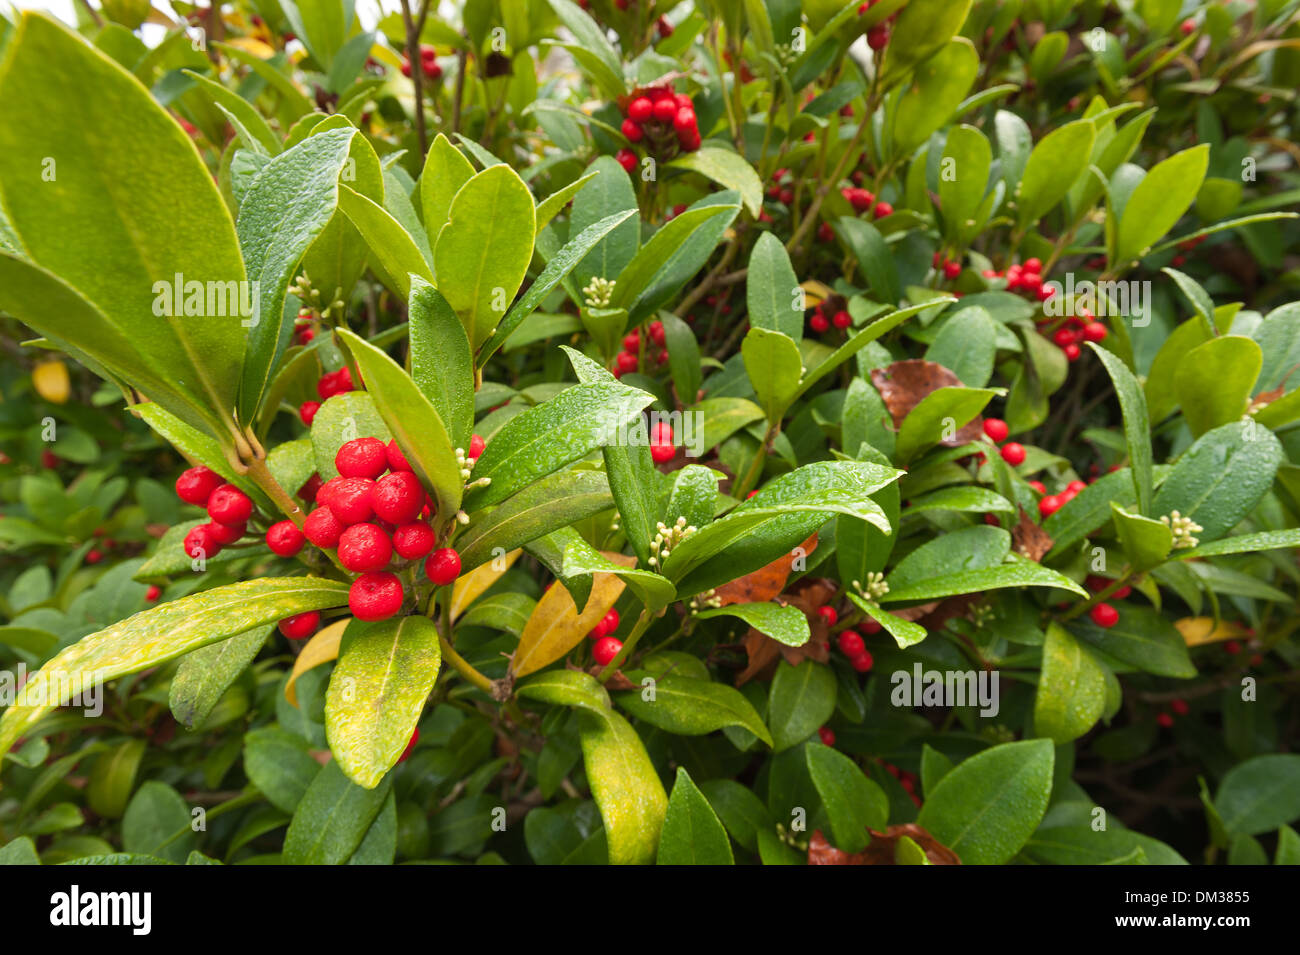 Landscaping Shrubs With Red Berries : A winter wonderland evergreen shrub with glossy leaves and